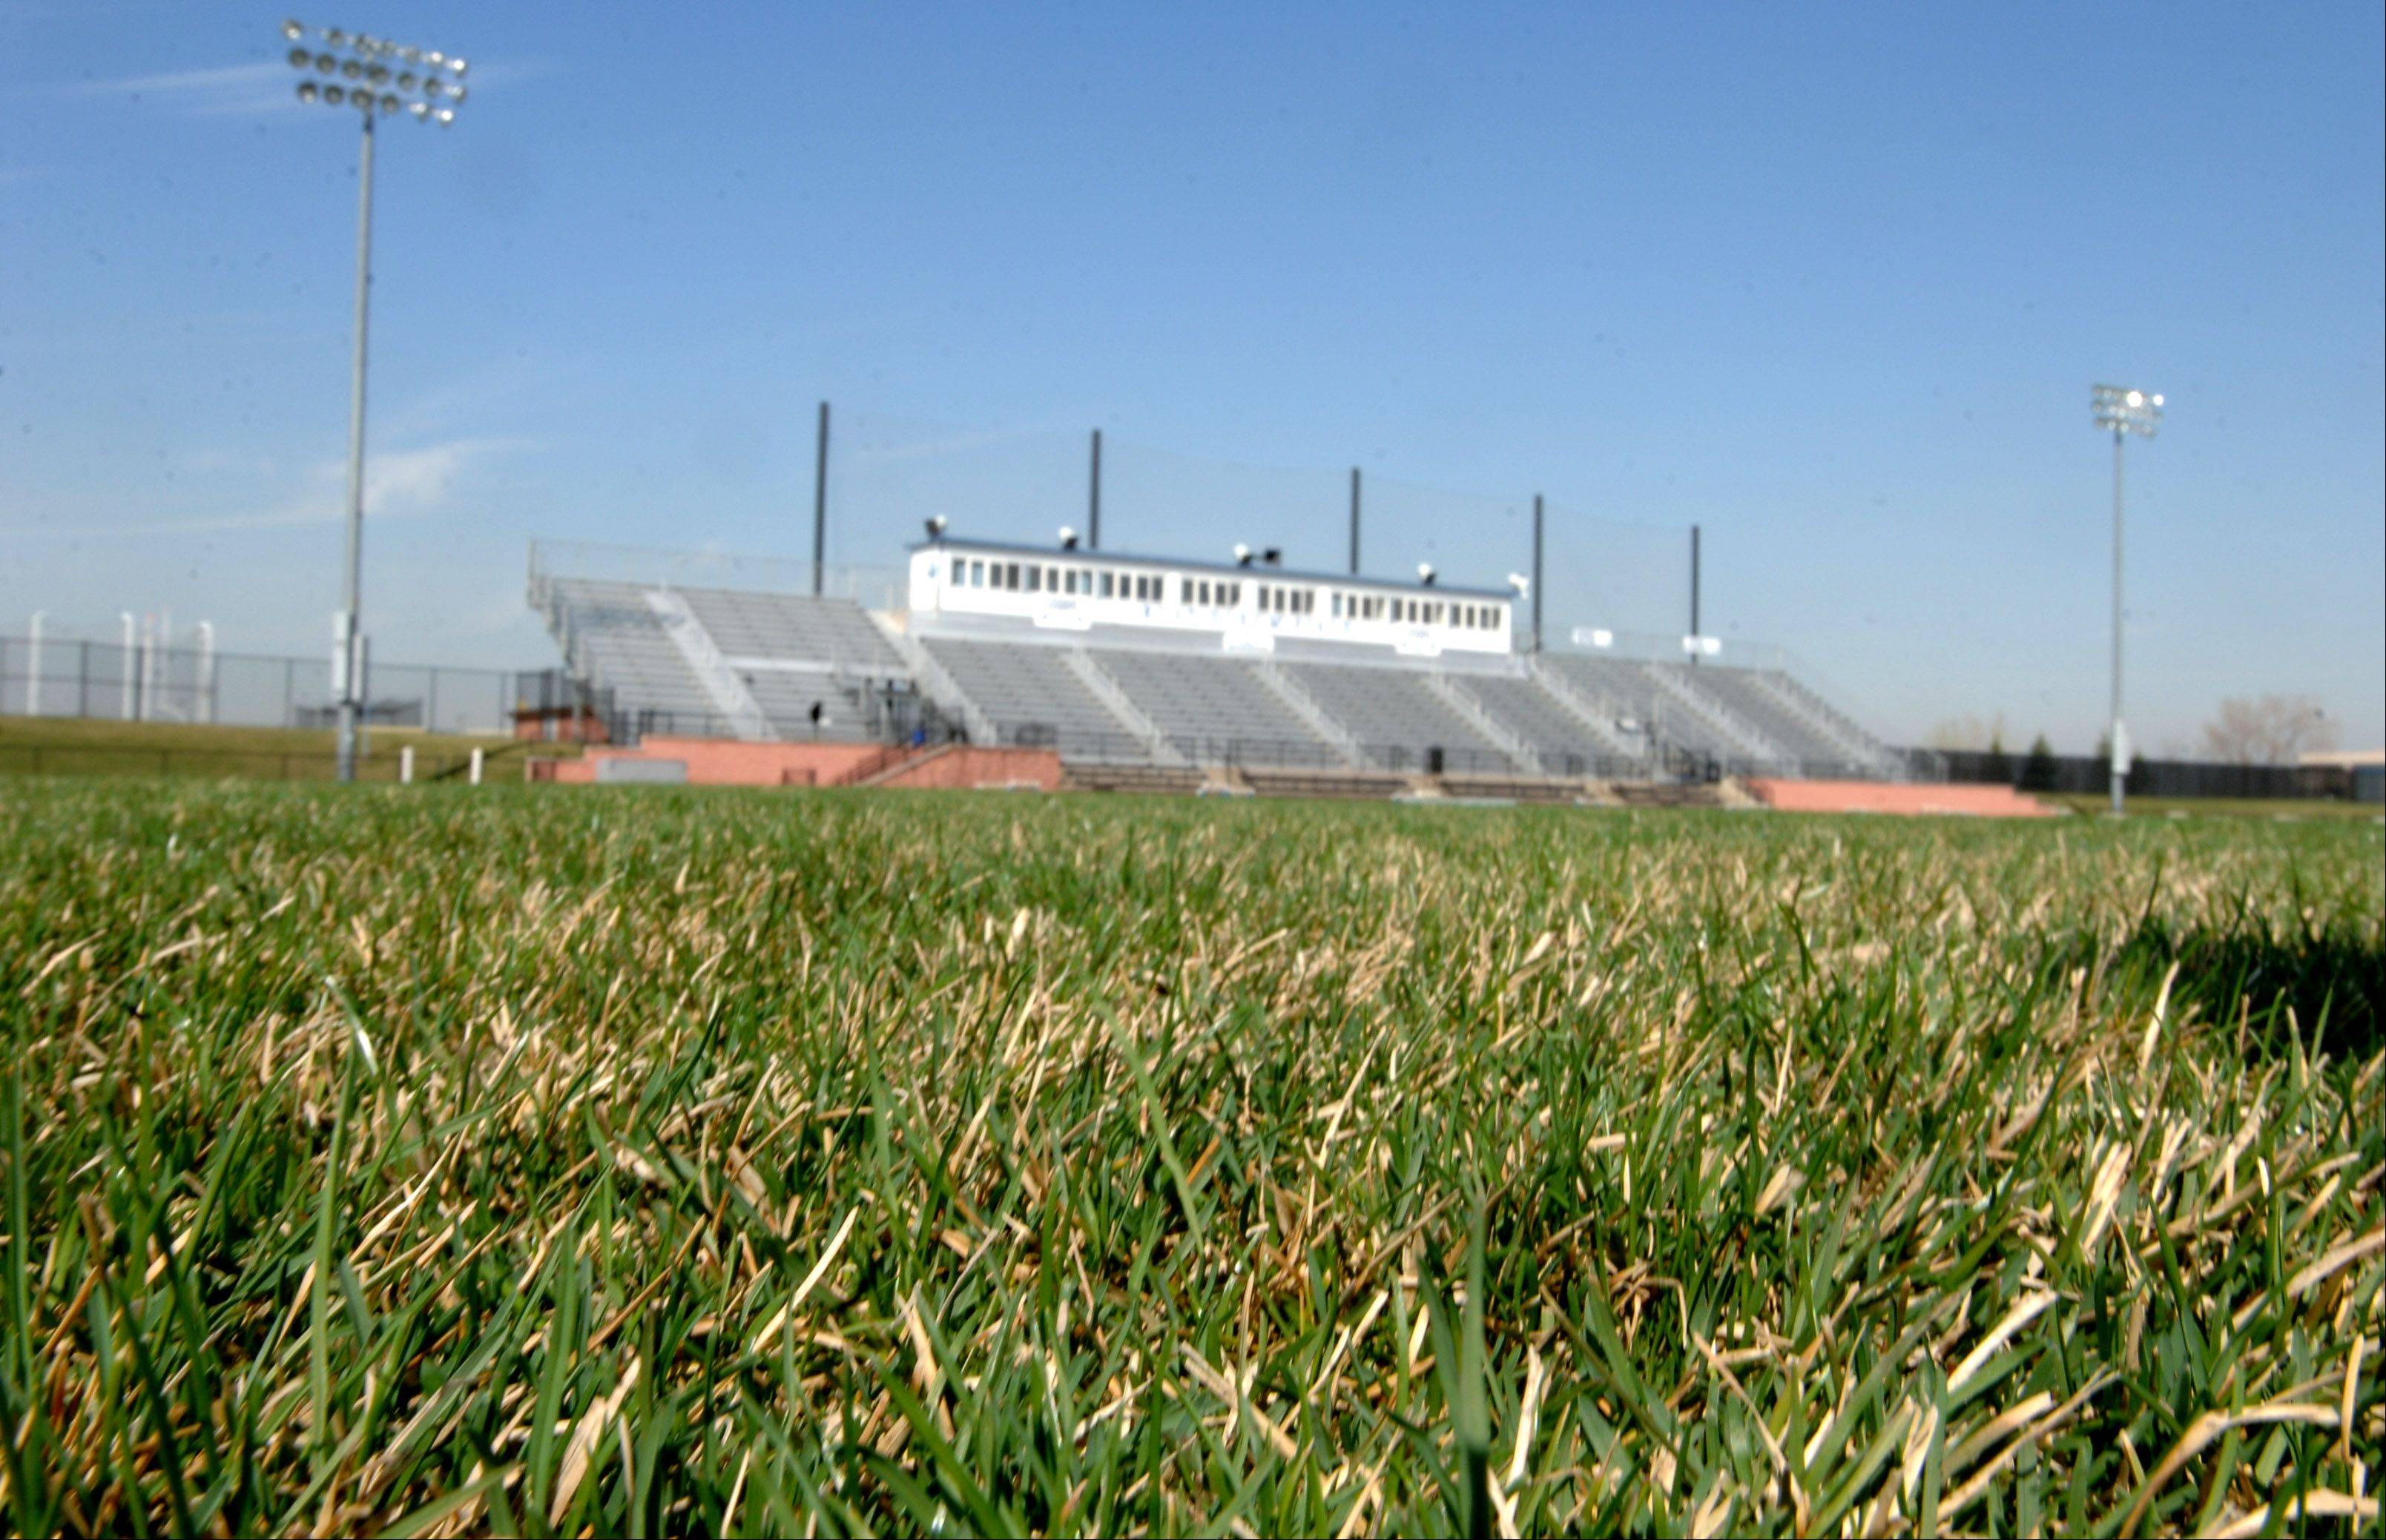 The grass football field at Vernon Hills High School will be replaced with artificial turf, Libertyville-Vernon Hills Area High School District 128 announced this week.